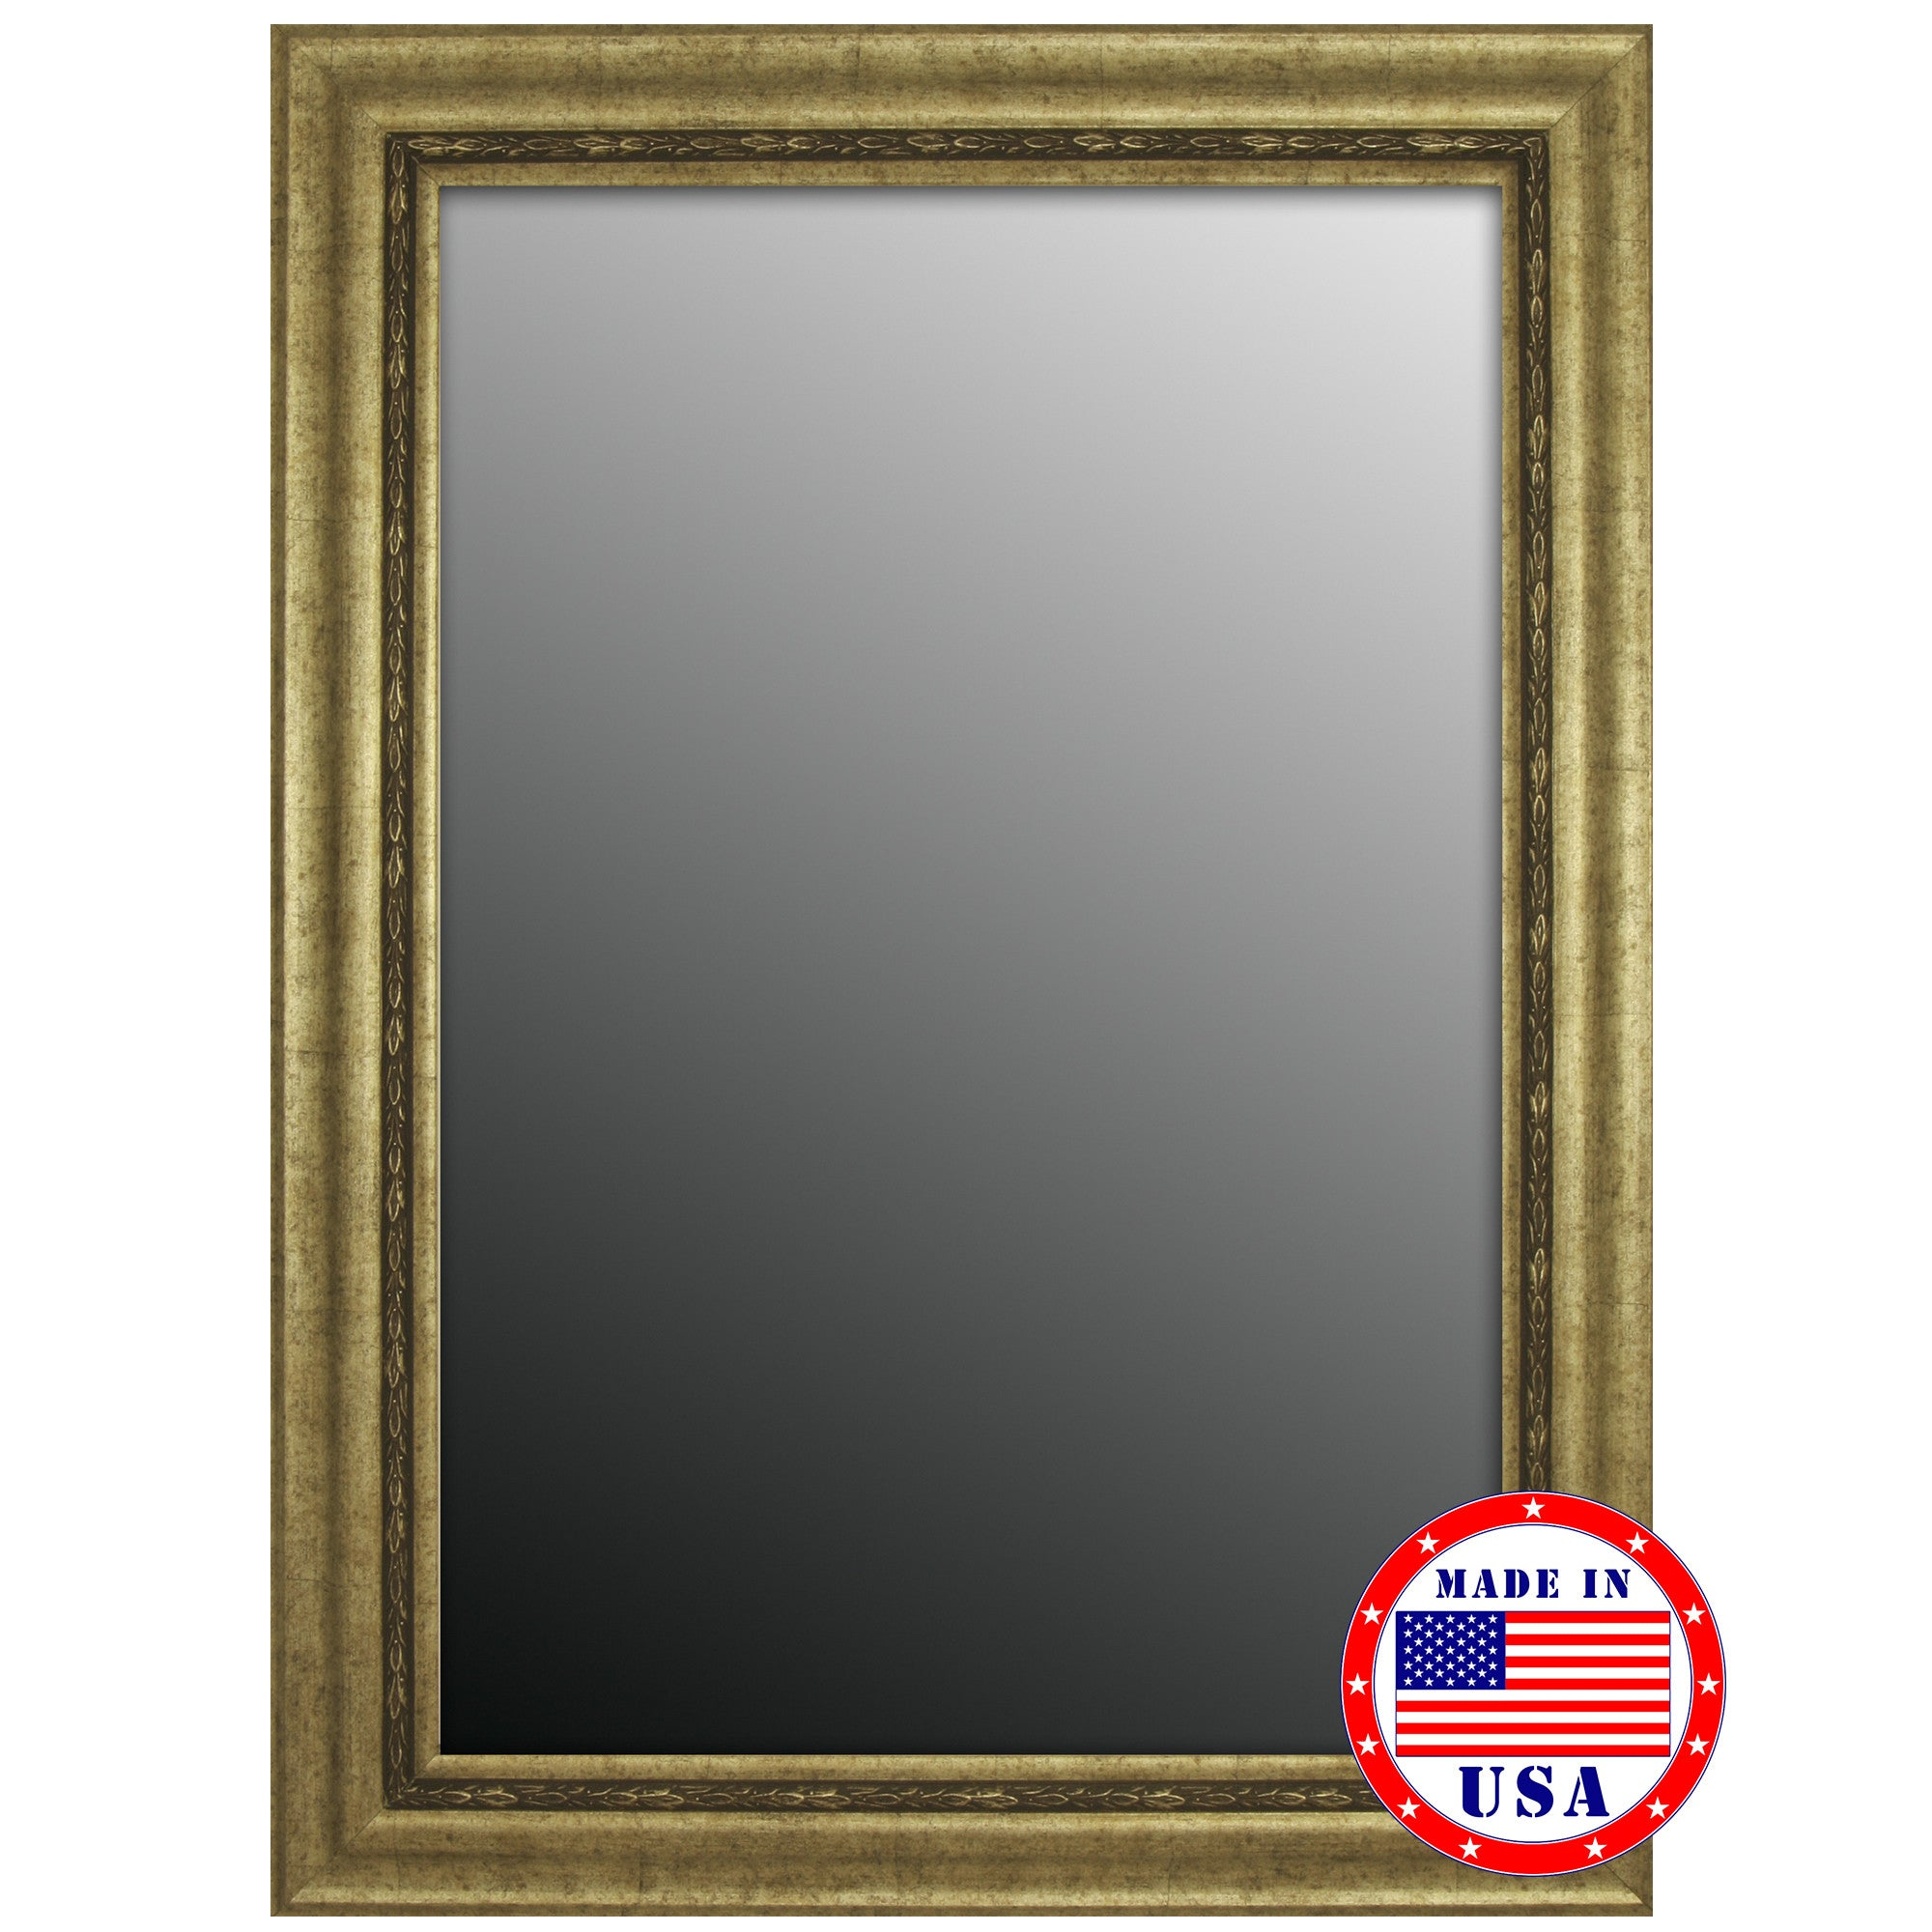 Framed Wall Mirrors andelusian silver classic framed wall mirror – mirrorsmart